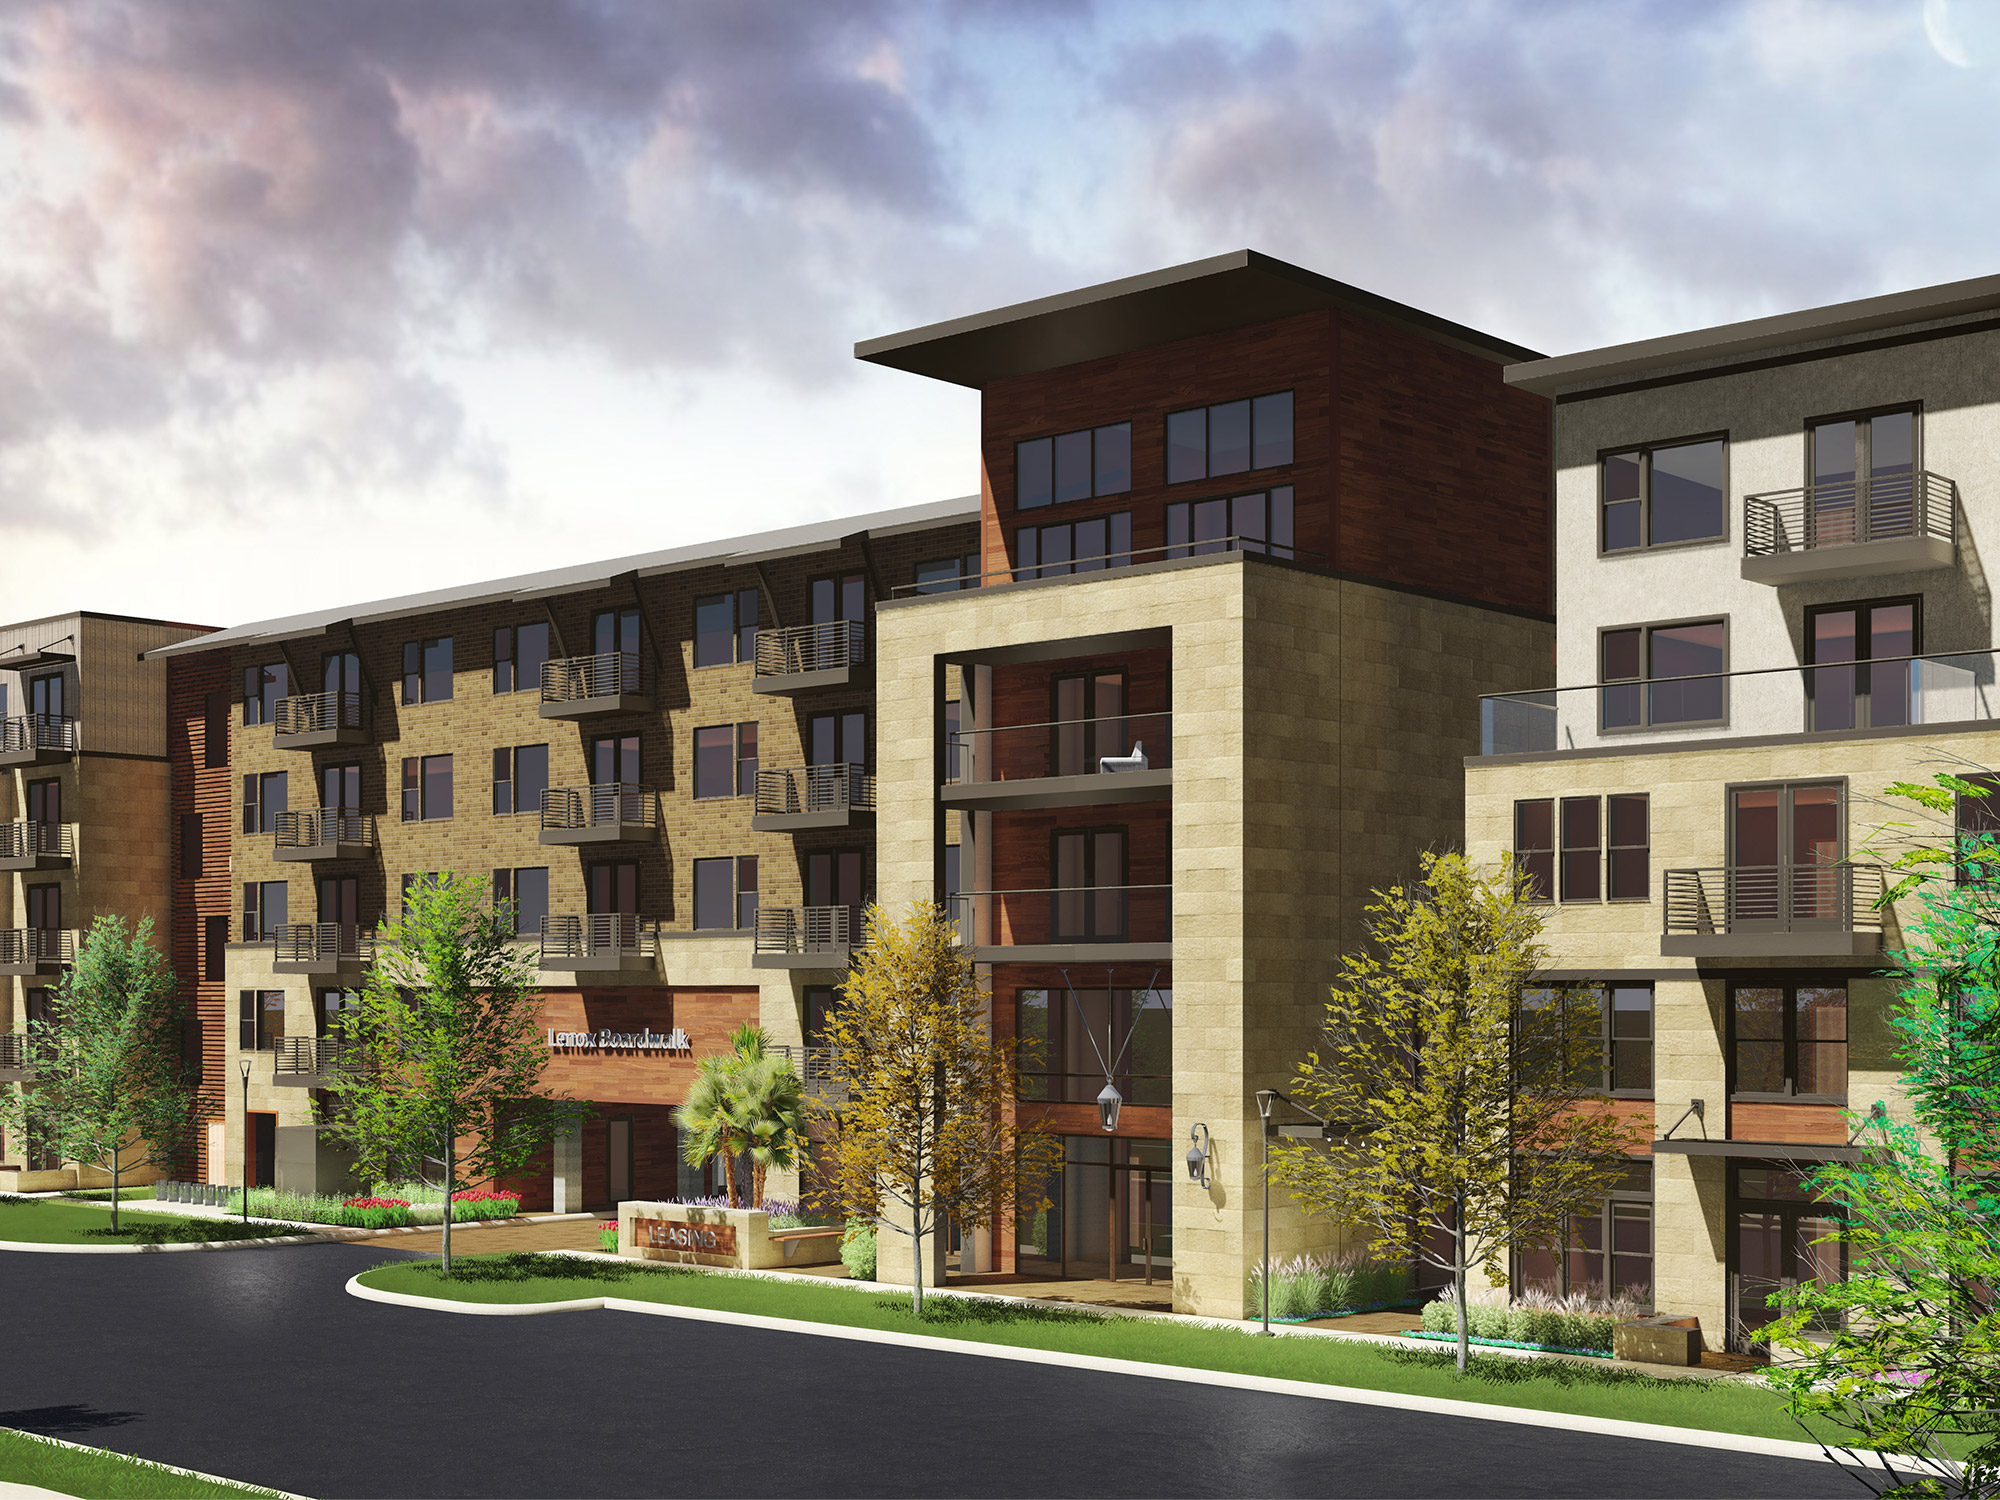 Rendering showing exterior of community in the daytime